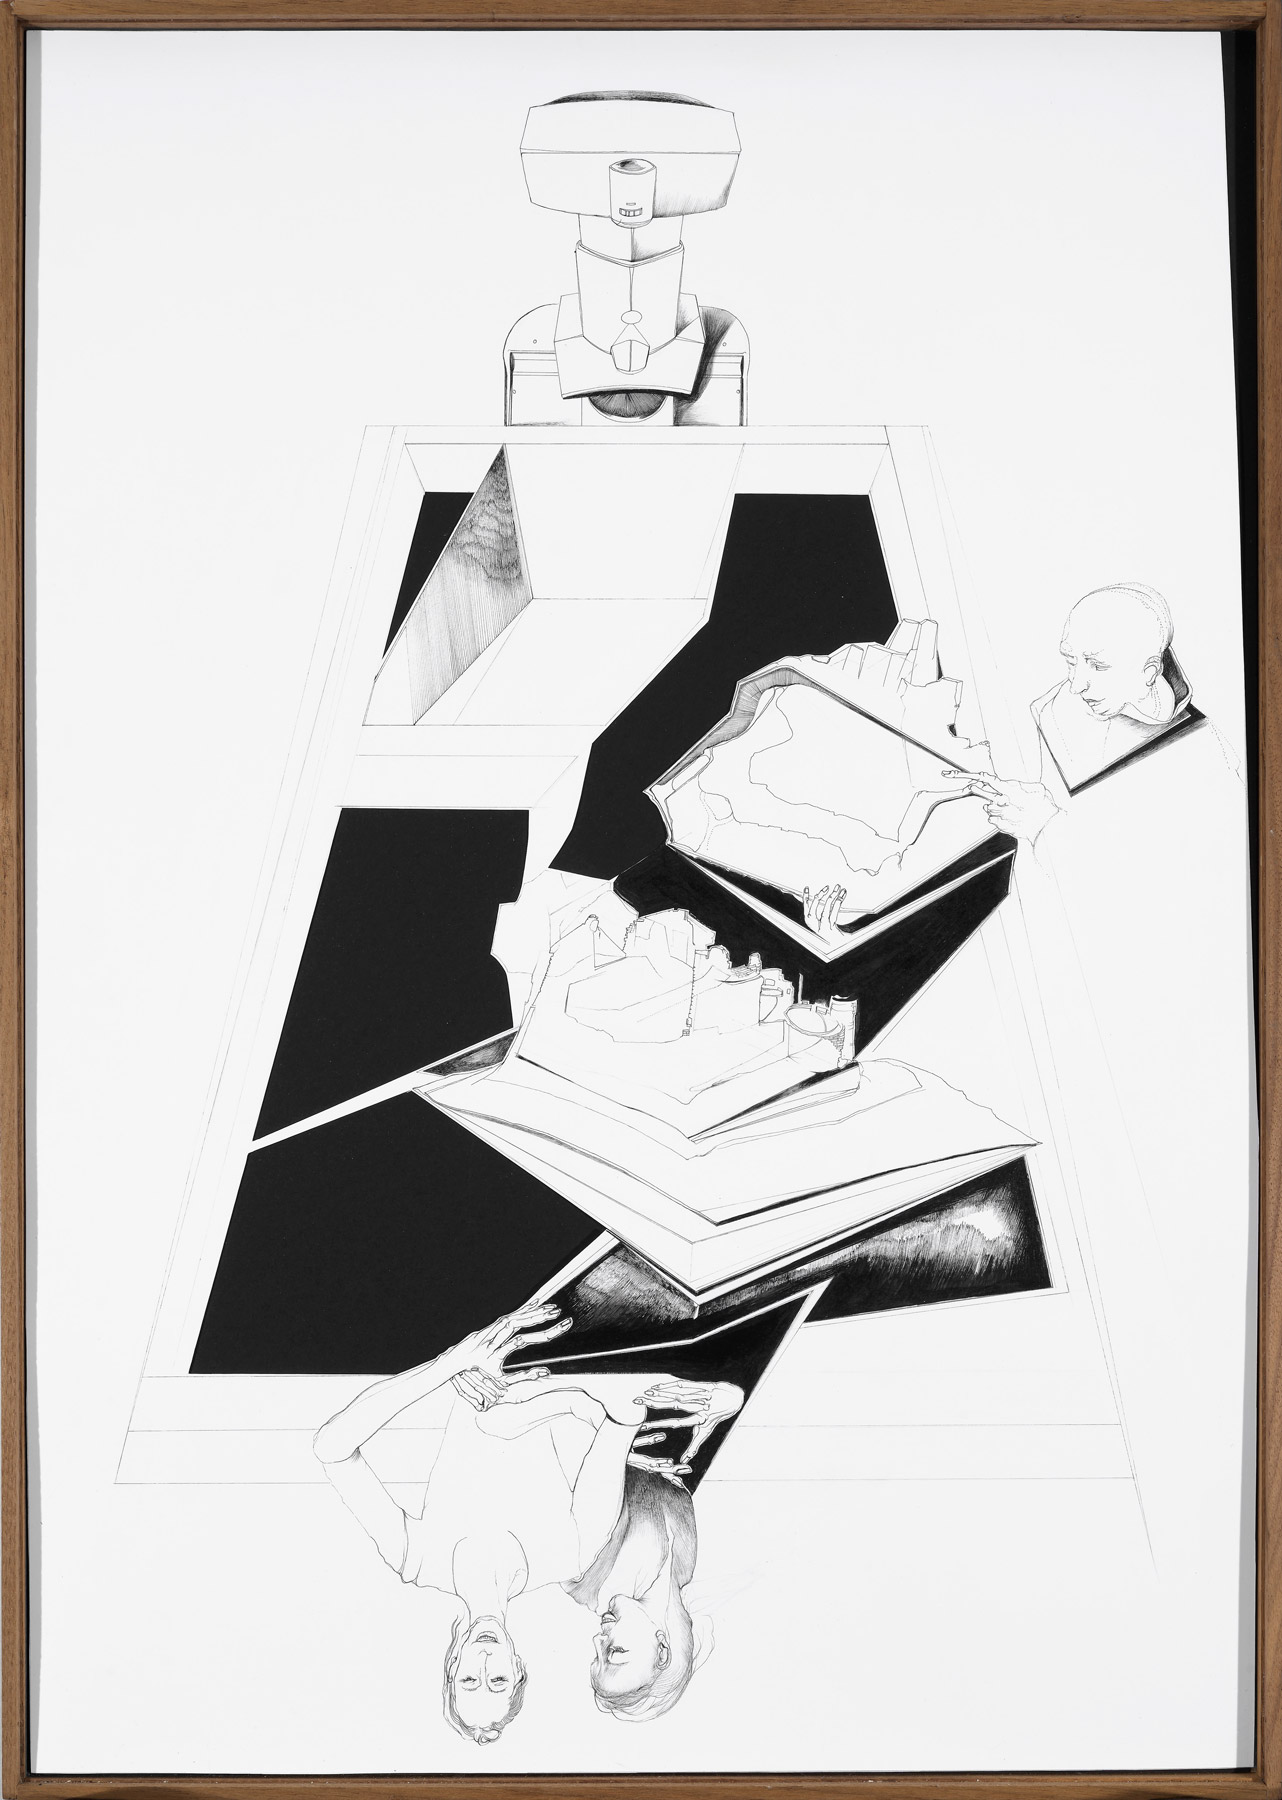 Nina Annabelle Märkl | Modell Nr. 2 | Ink and pencil on paper, cut outs, black paper | 69 x 42 cm | 2014 | photo: Walter Bayer